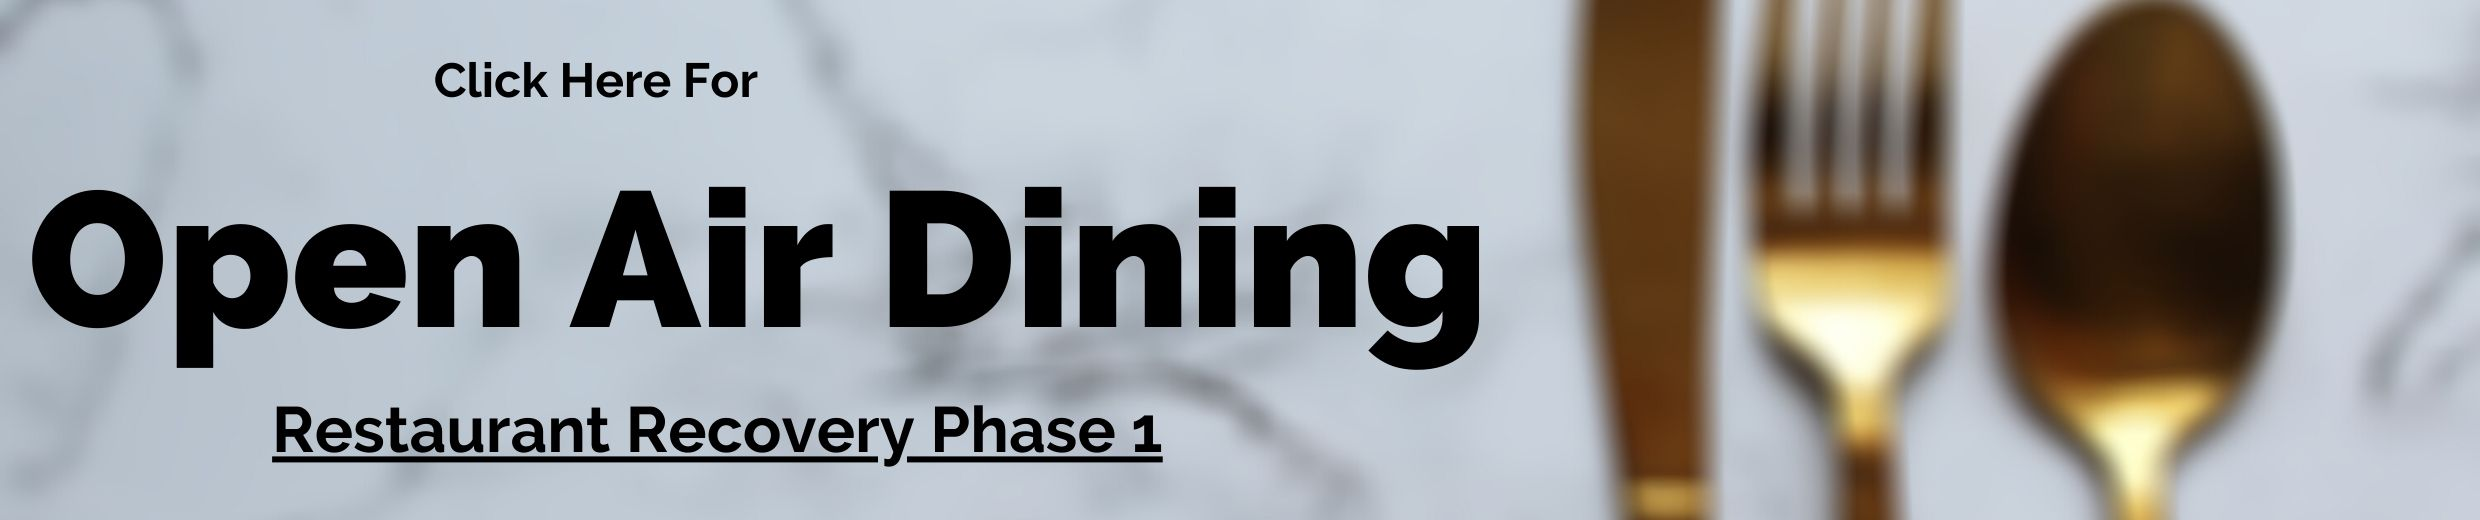 Open Air Dining Button